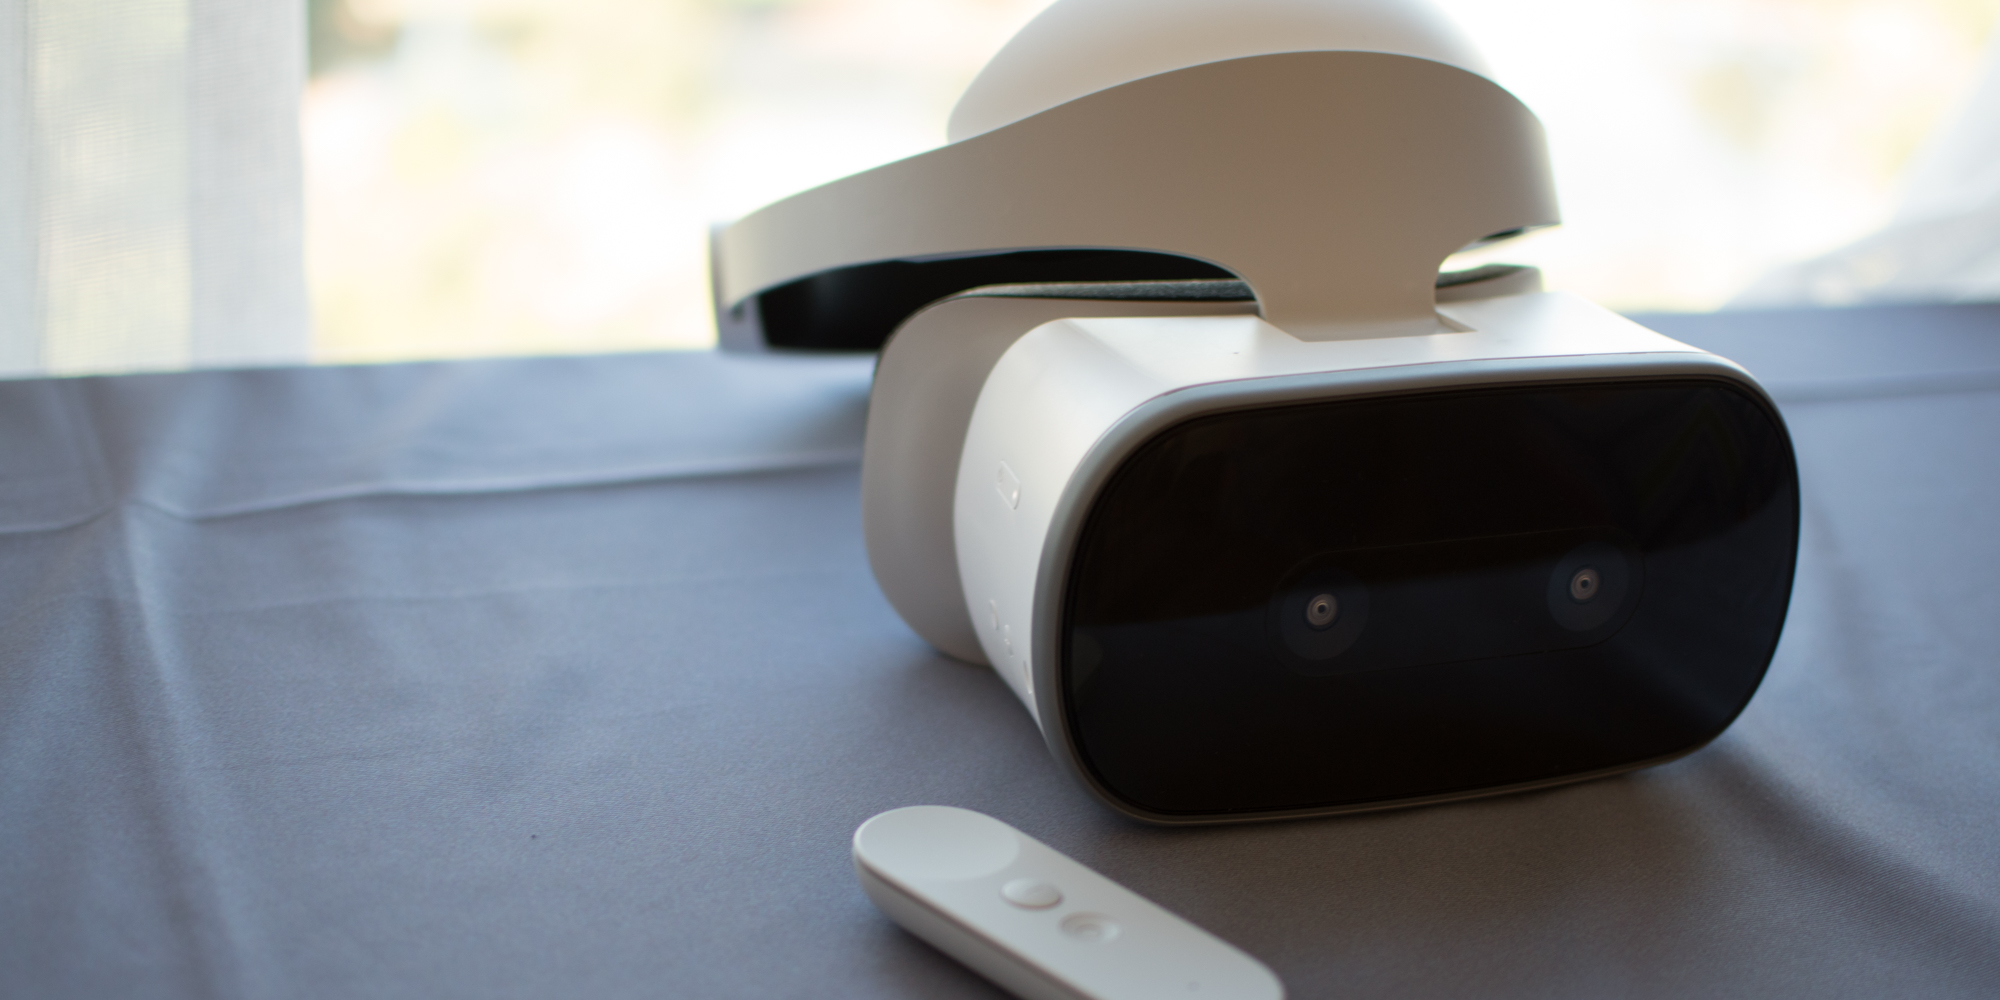 multiple controller support is coming to daydream according to latest google vr sdk